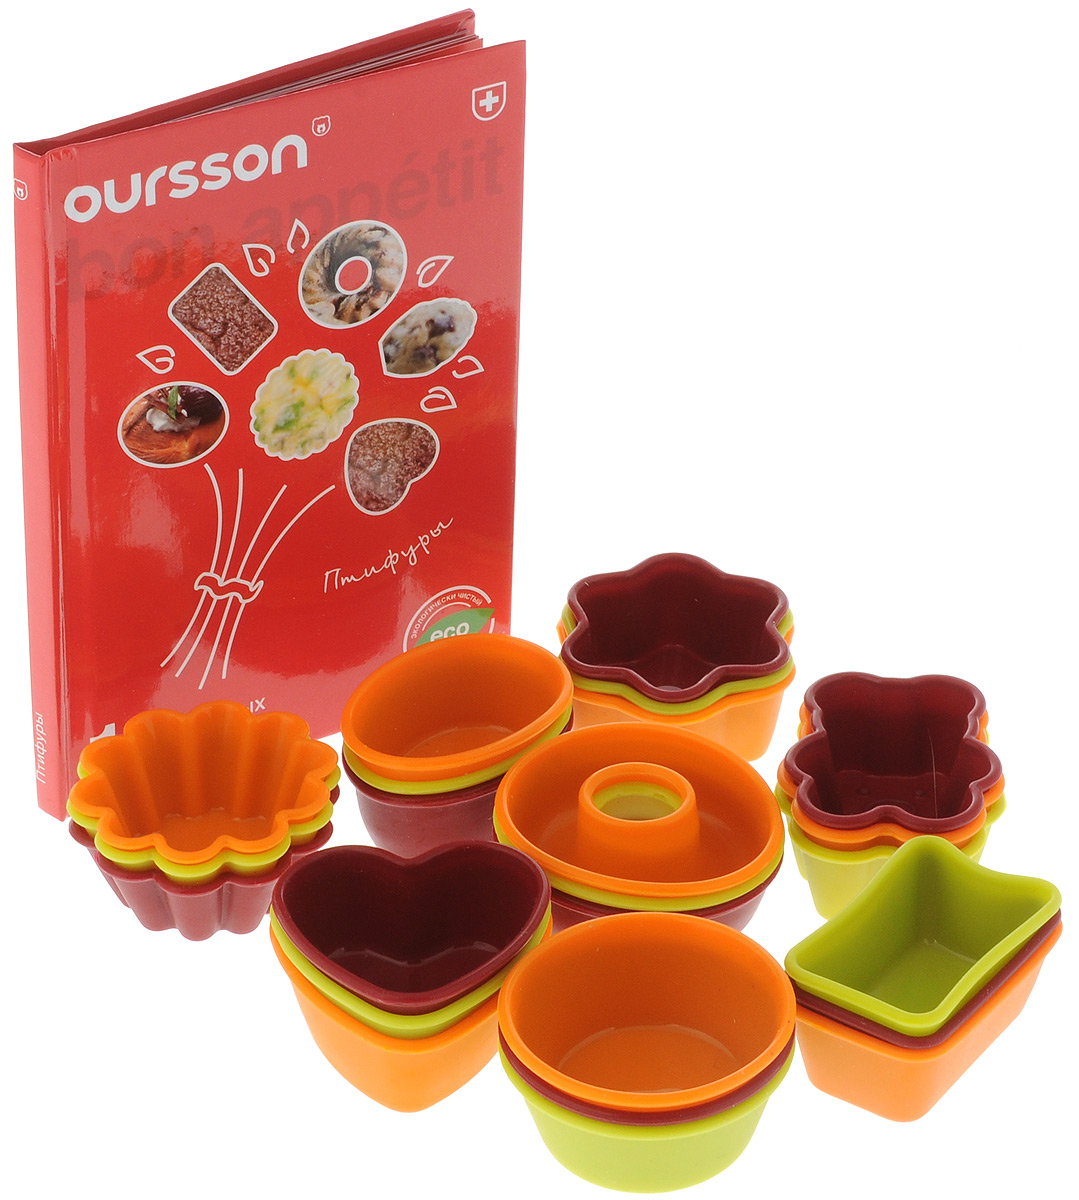 Набор для выпечки Oursson, 25 предметов набор для выпечки oursson silicone bw3150ss mc